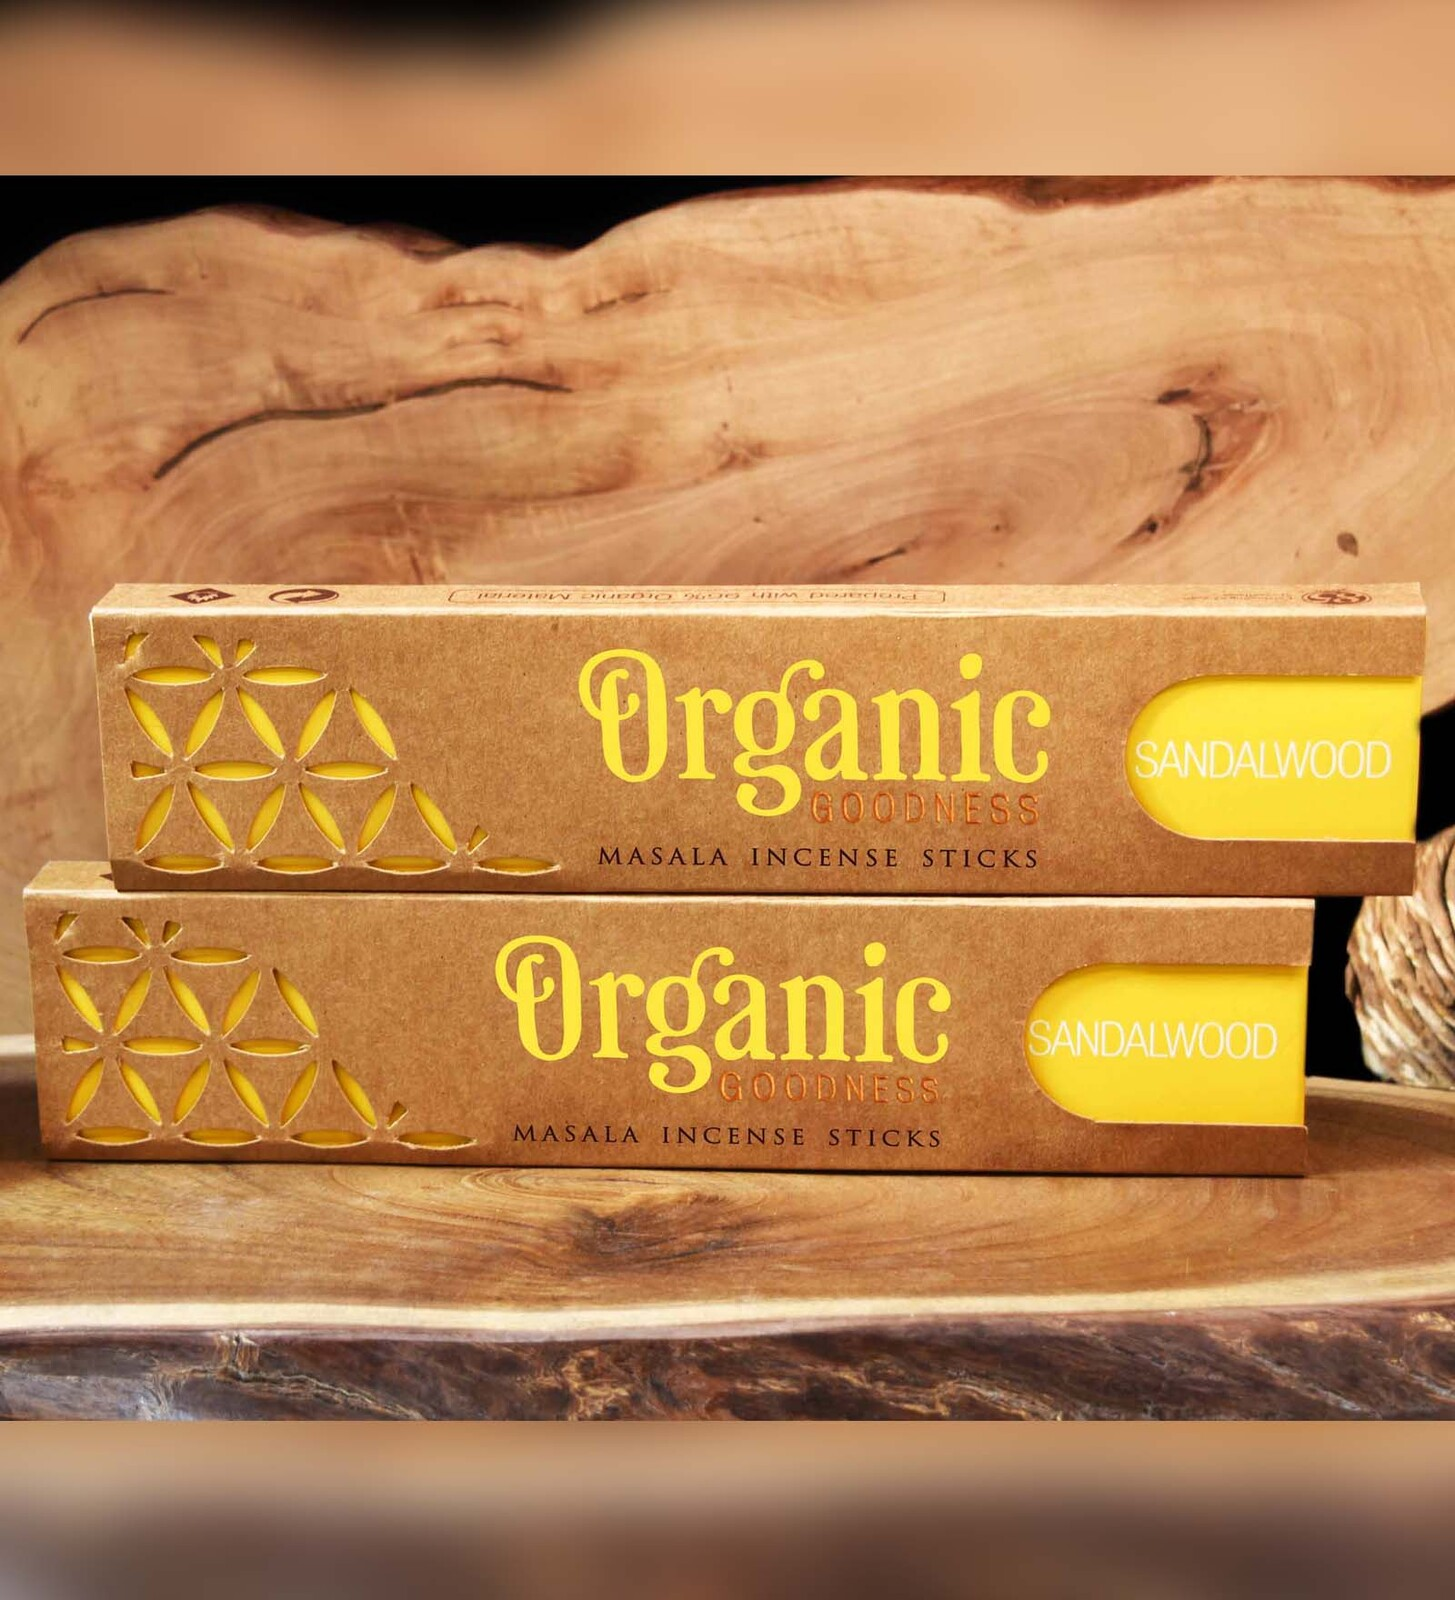 Organic Goodness Masala Incense - SANDALWOOD